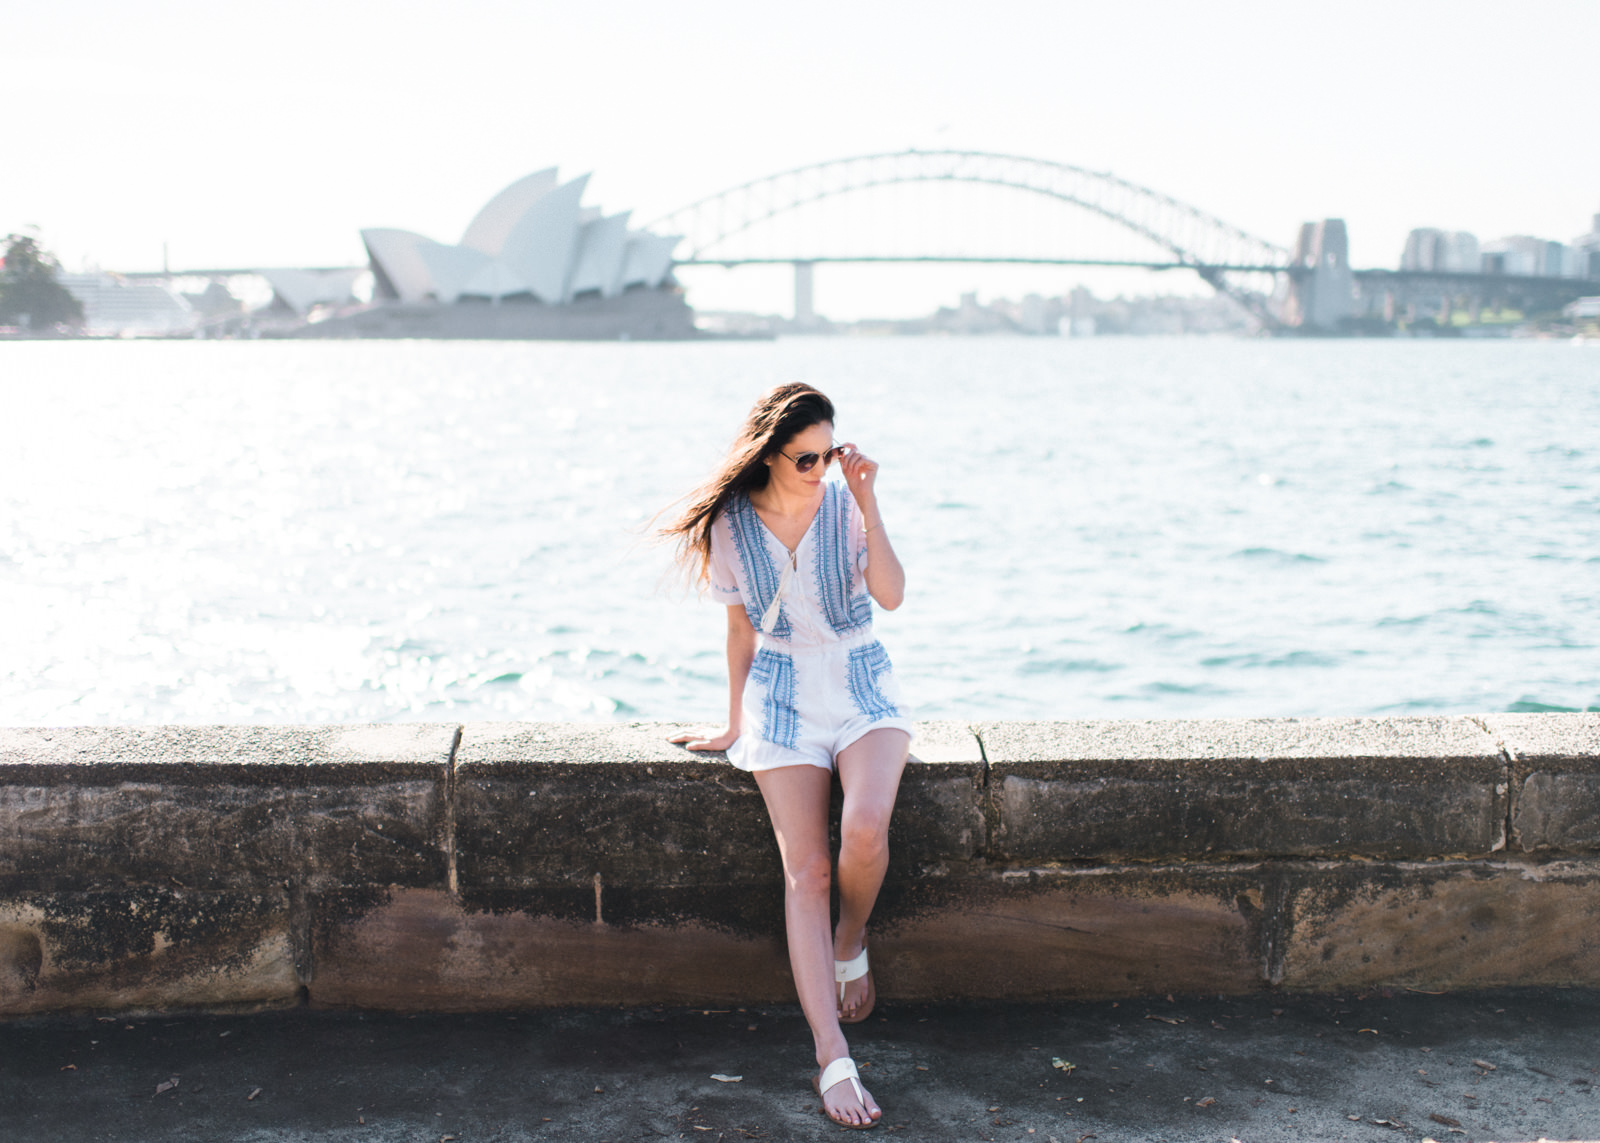 mrs macqueries chair, sydney, australia, best view of the sydney opera house, where to go in sydney, what to do in sydney, white and blue romper